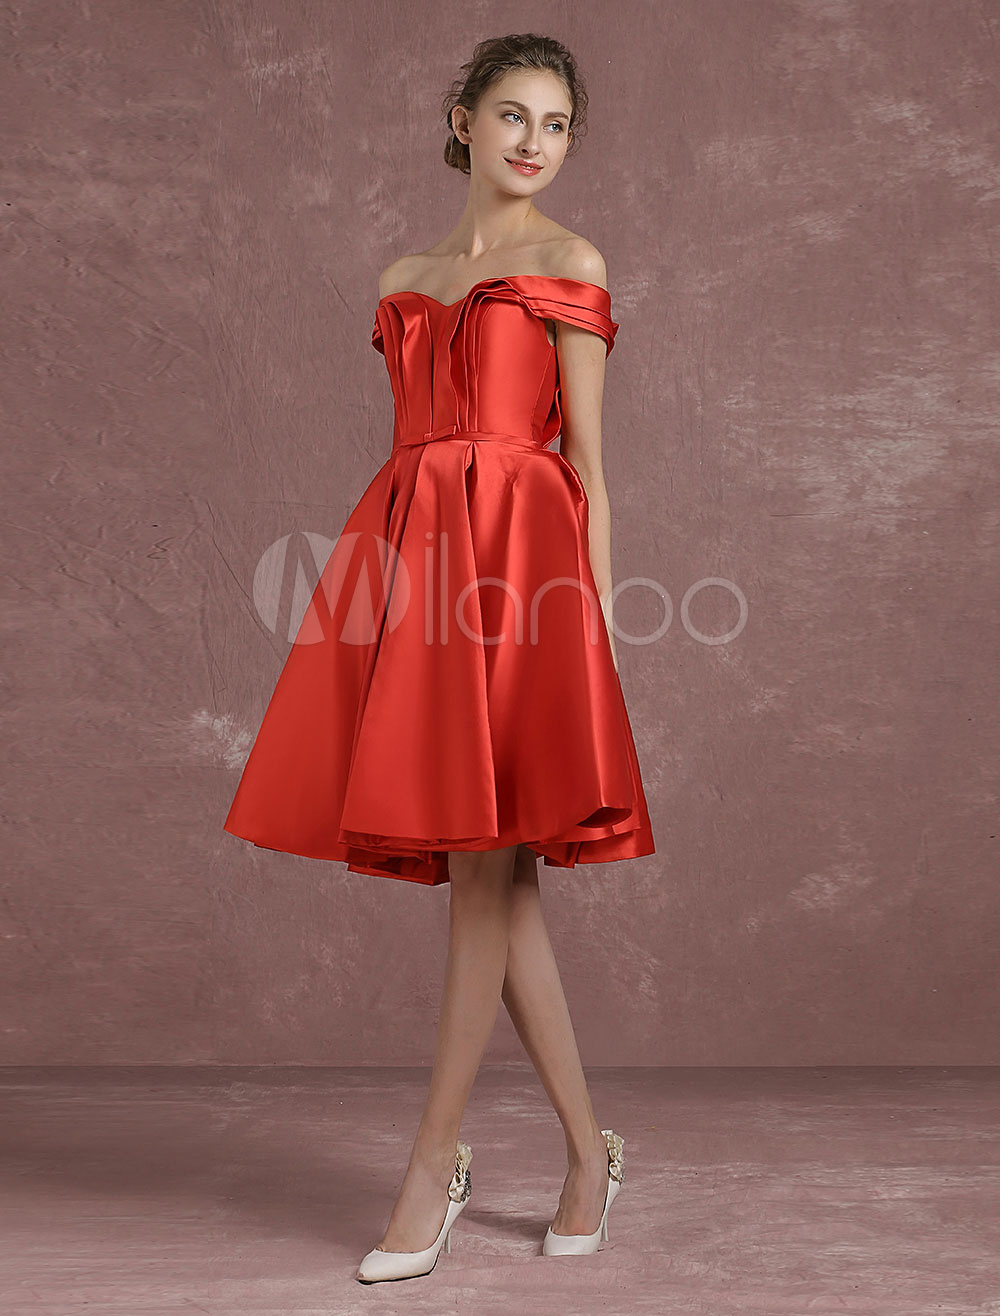 446b8657d1056a ... Off The Shoulder Cocktail Dress Red Satin Homecoming Dress Ruched A  Line Knee Length Party Dress ...